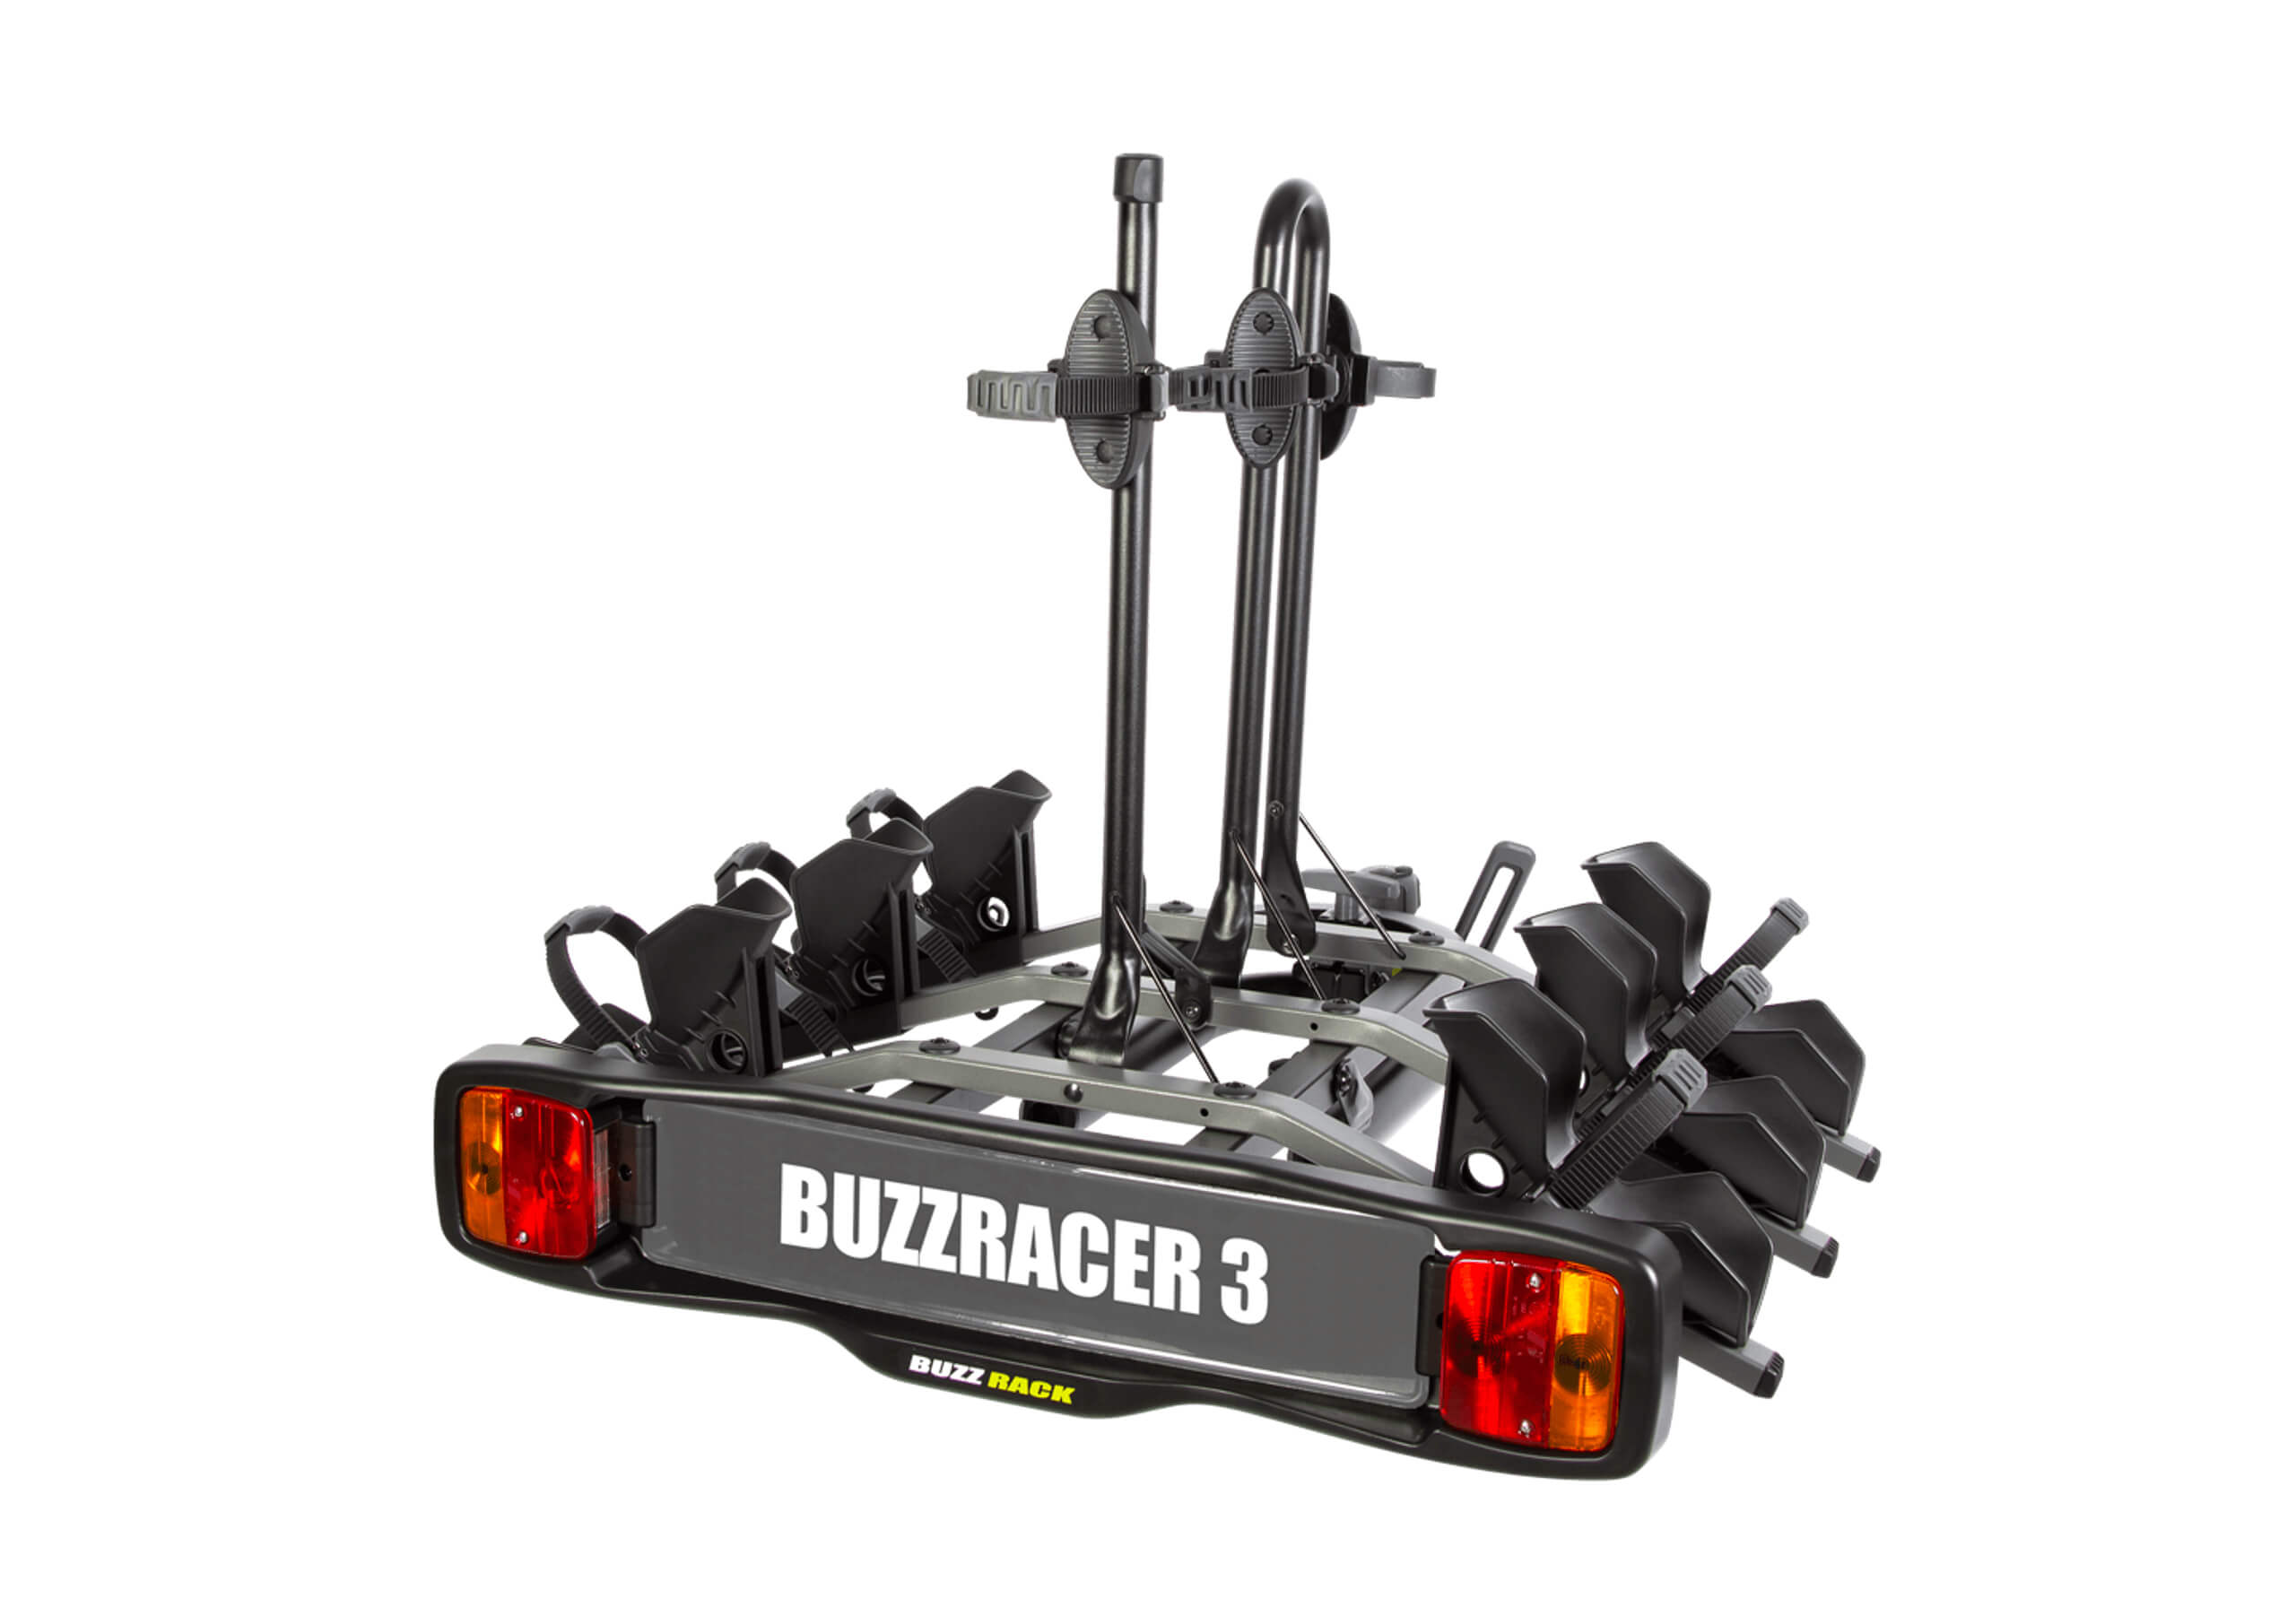 :BUZZ RACK BuzzRacer 3 bike wheel support rack no. BRP333